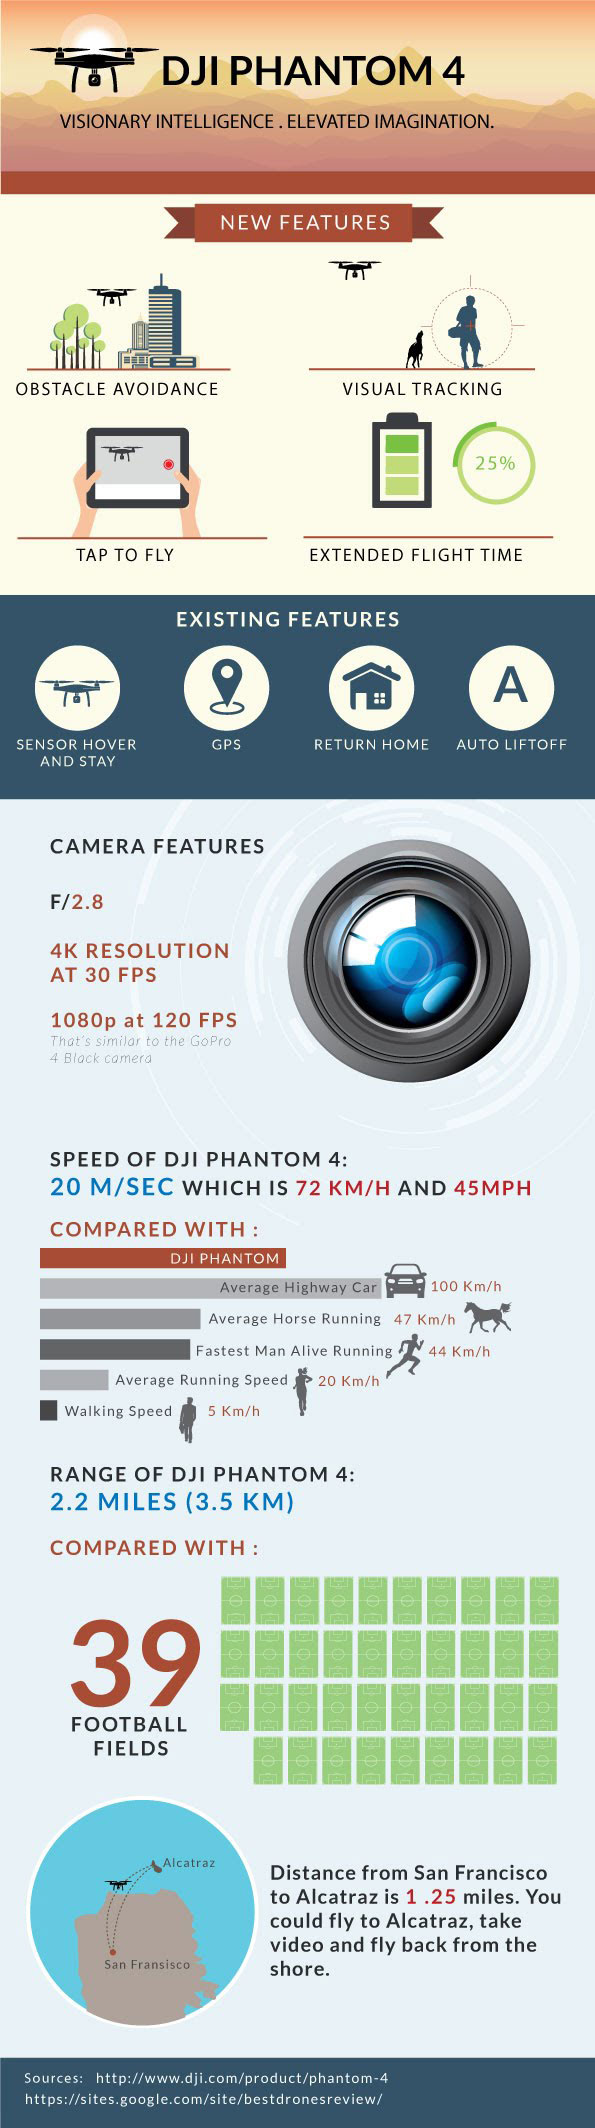 phantom-4-infographic